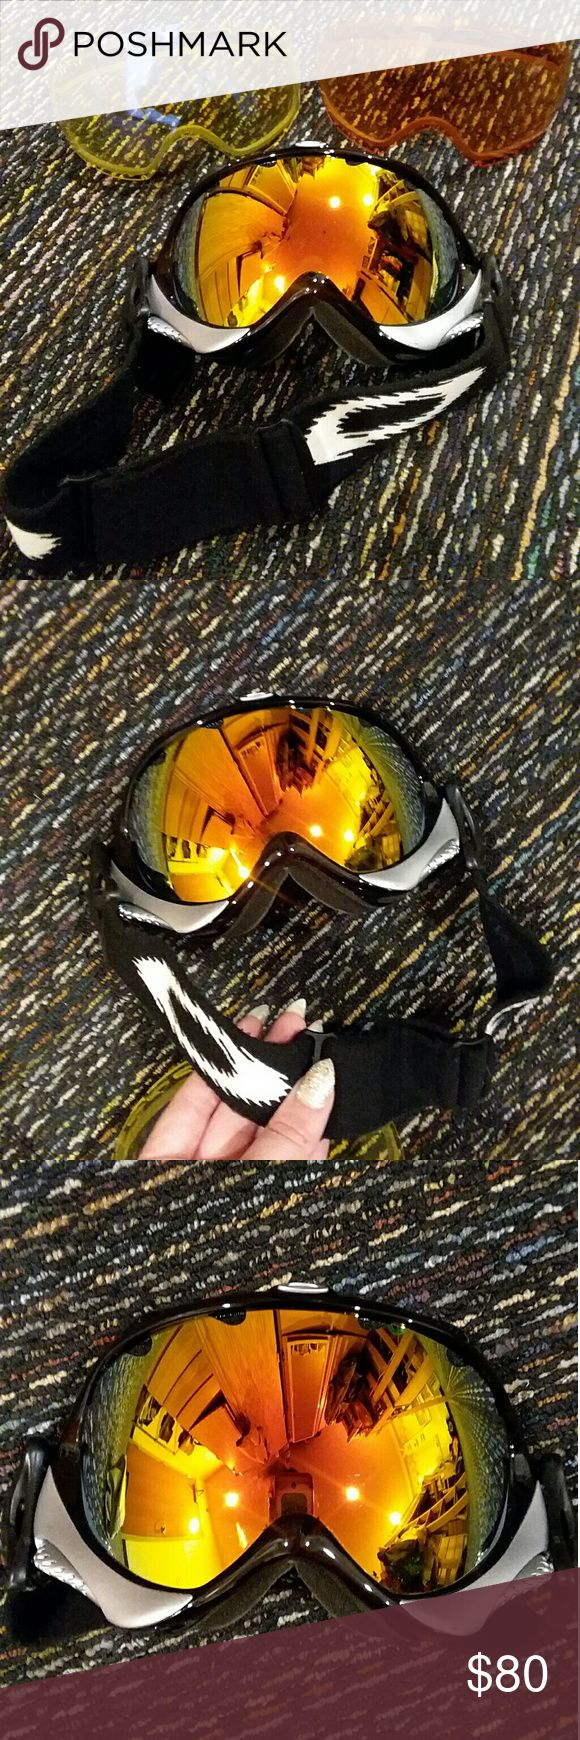 Oakley Ski Goggles 100% Non Smoking & Pet Free Home.   Top 5% & ⭐⭐⭐⭐⭐ Seller. Shop with confidence :)  Feel free to like, follow, and share. Accepting  offers. Thanks for the love!   High-definition Unisex Oakley Ski Snowboard snowmobile Goggles. Safety and protection three pop in lenses for bluebird overcast day and night ski. fog free vents. Black frame w/ silver detail orange gold yellow to green shine chromatic mirrored adjustable elastic strap toggle sides works w/ helmet or hat. In…